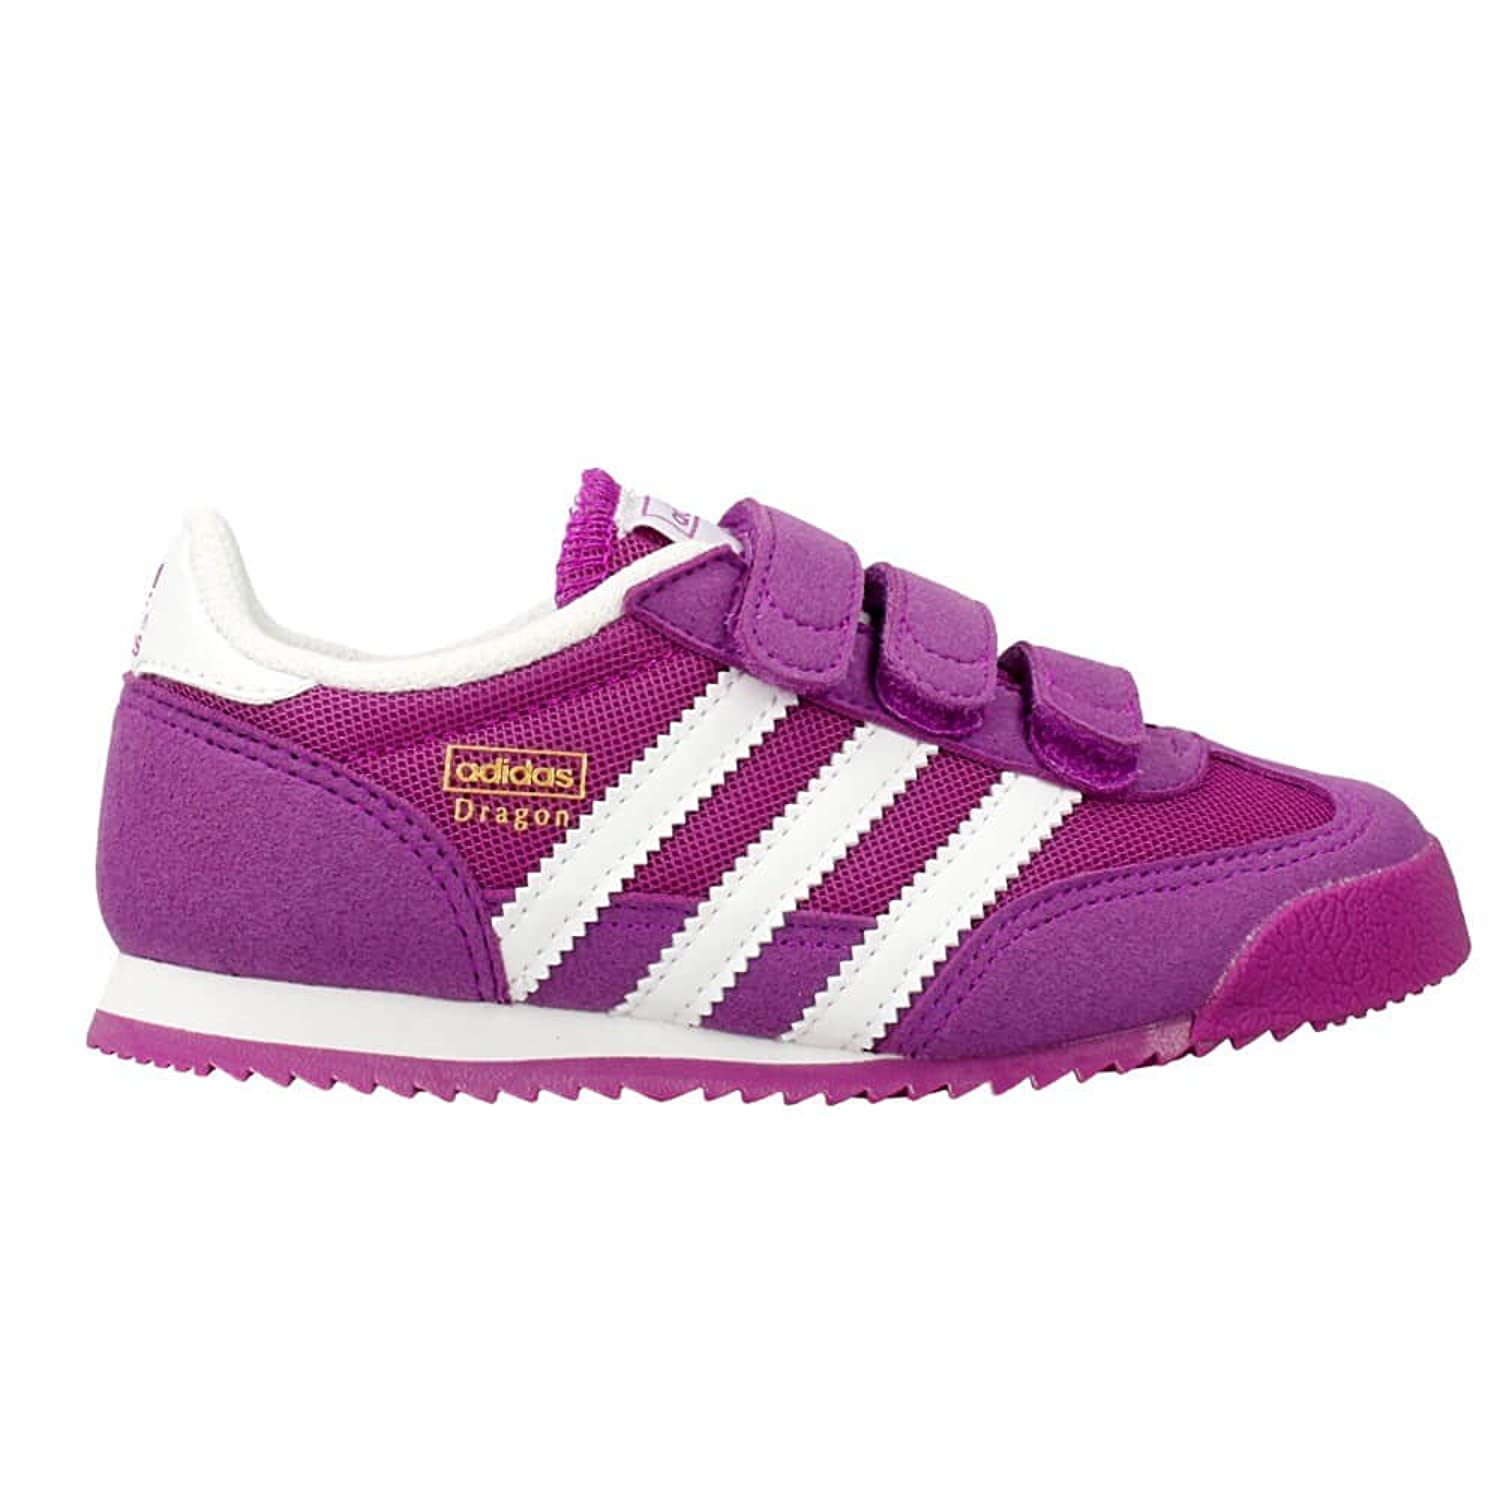 Adidas Zapatillas Dragon CF Morado/Blanco EU 27